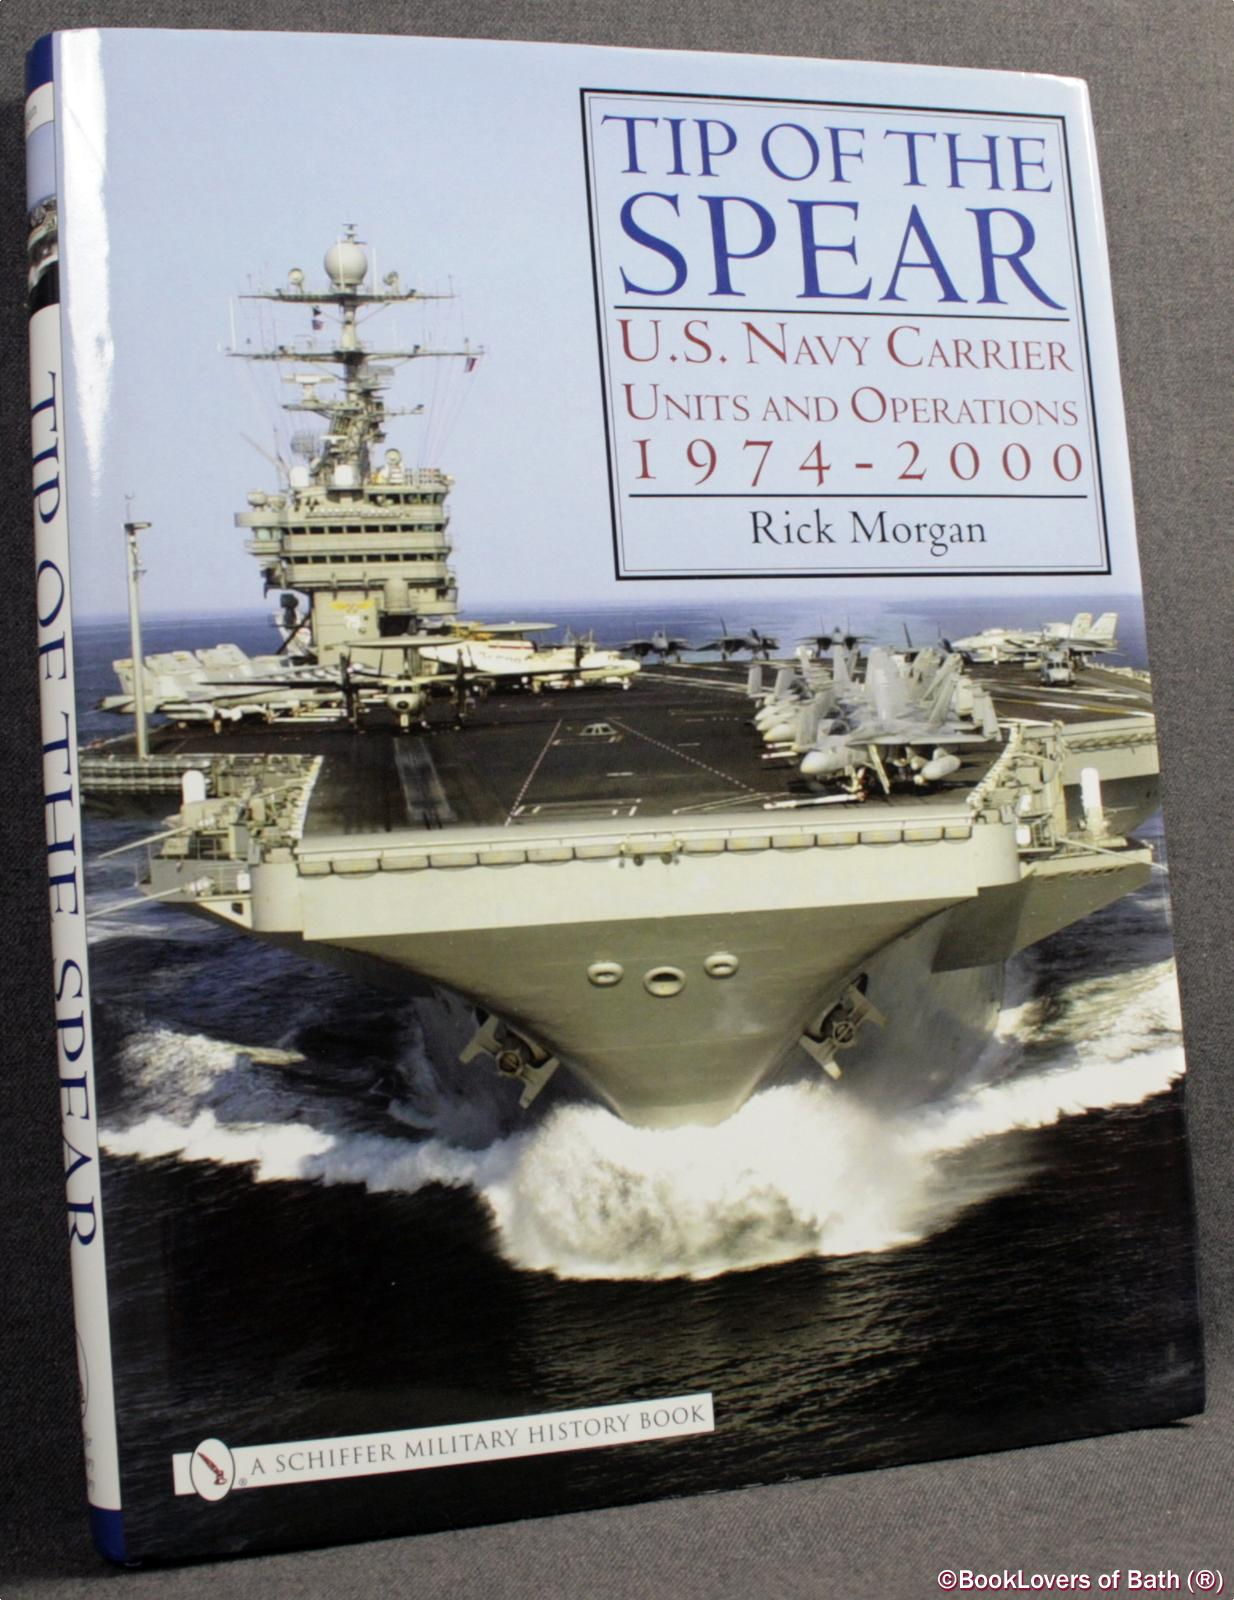 Tip of the Spear: U.S. Navy Carrier Units and Operations 1974-2000 - Rick Morgan